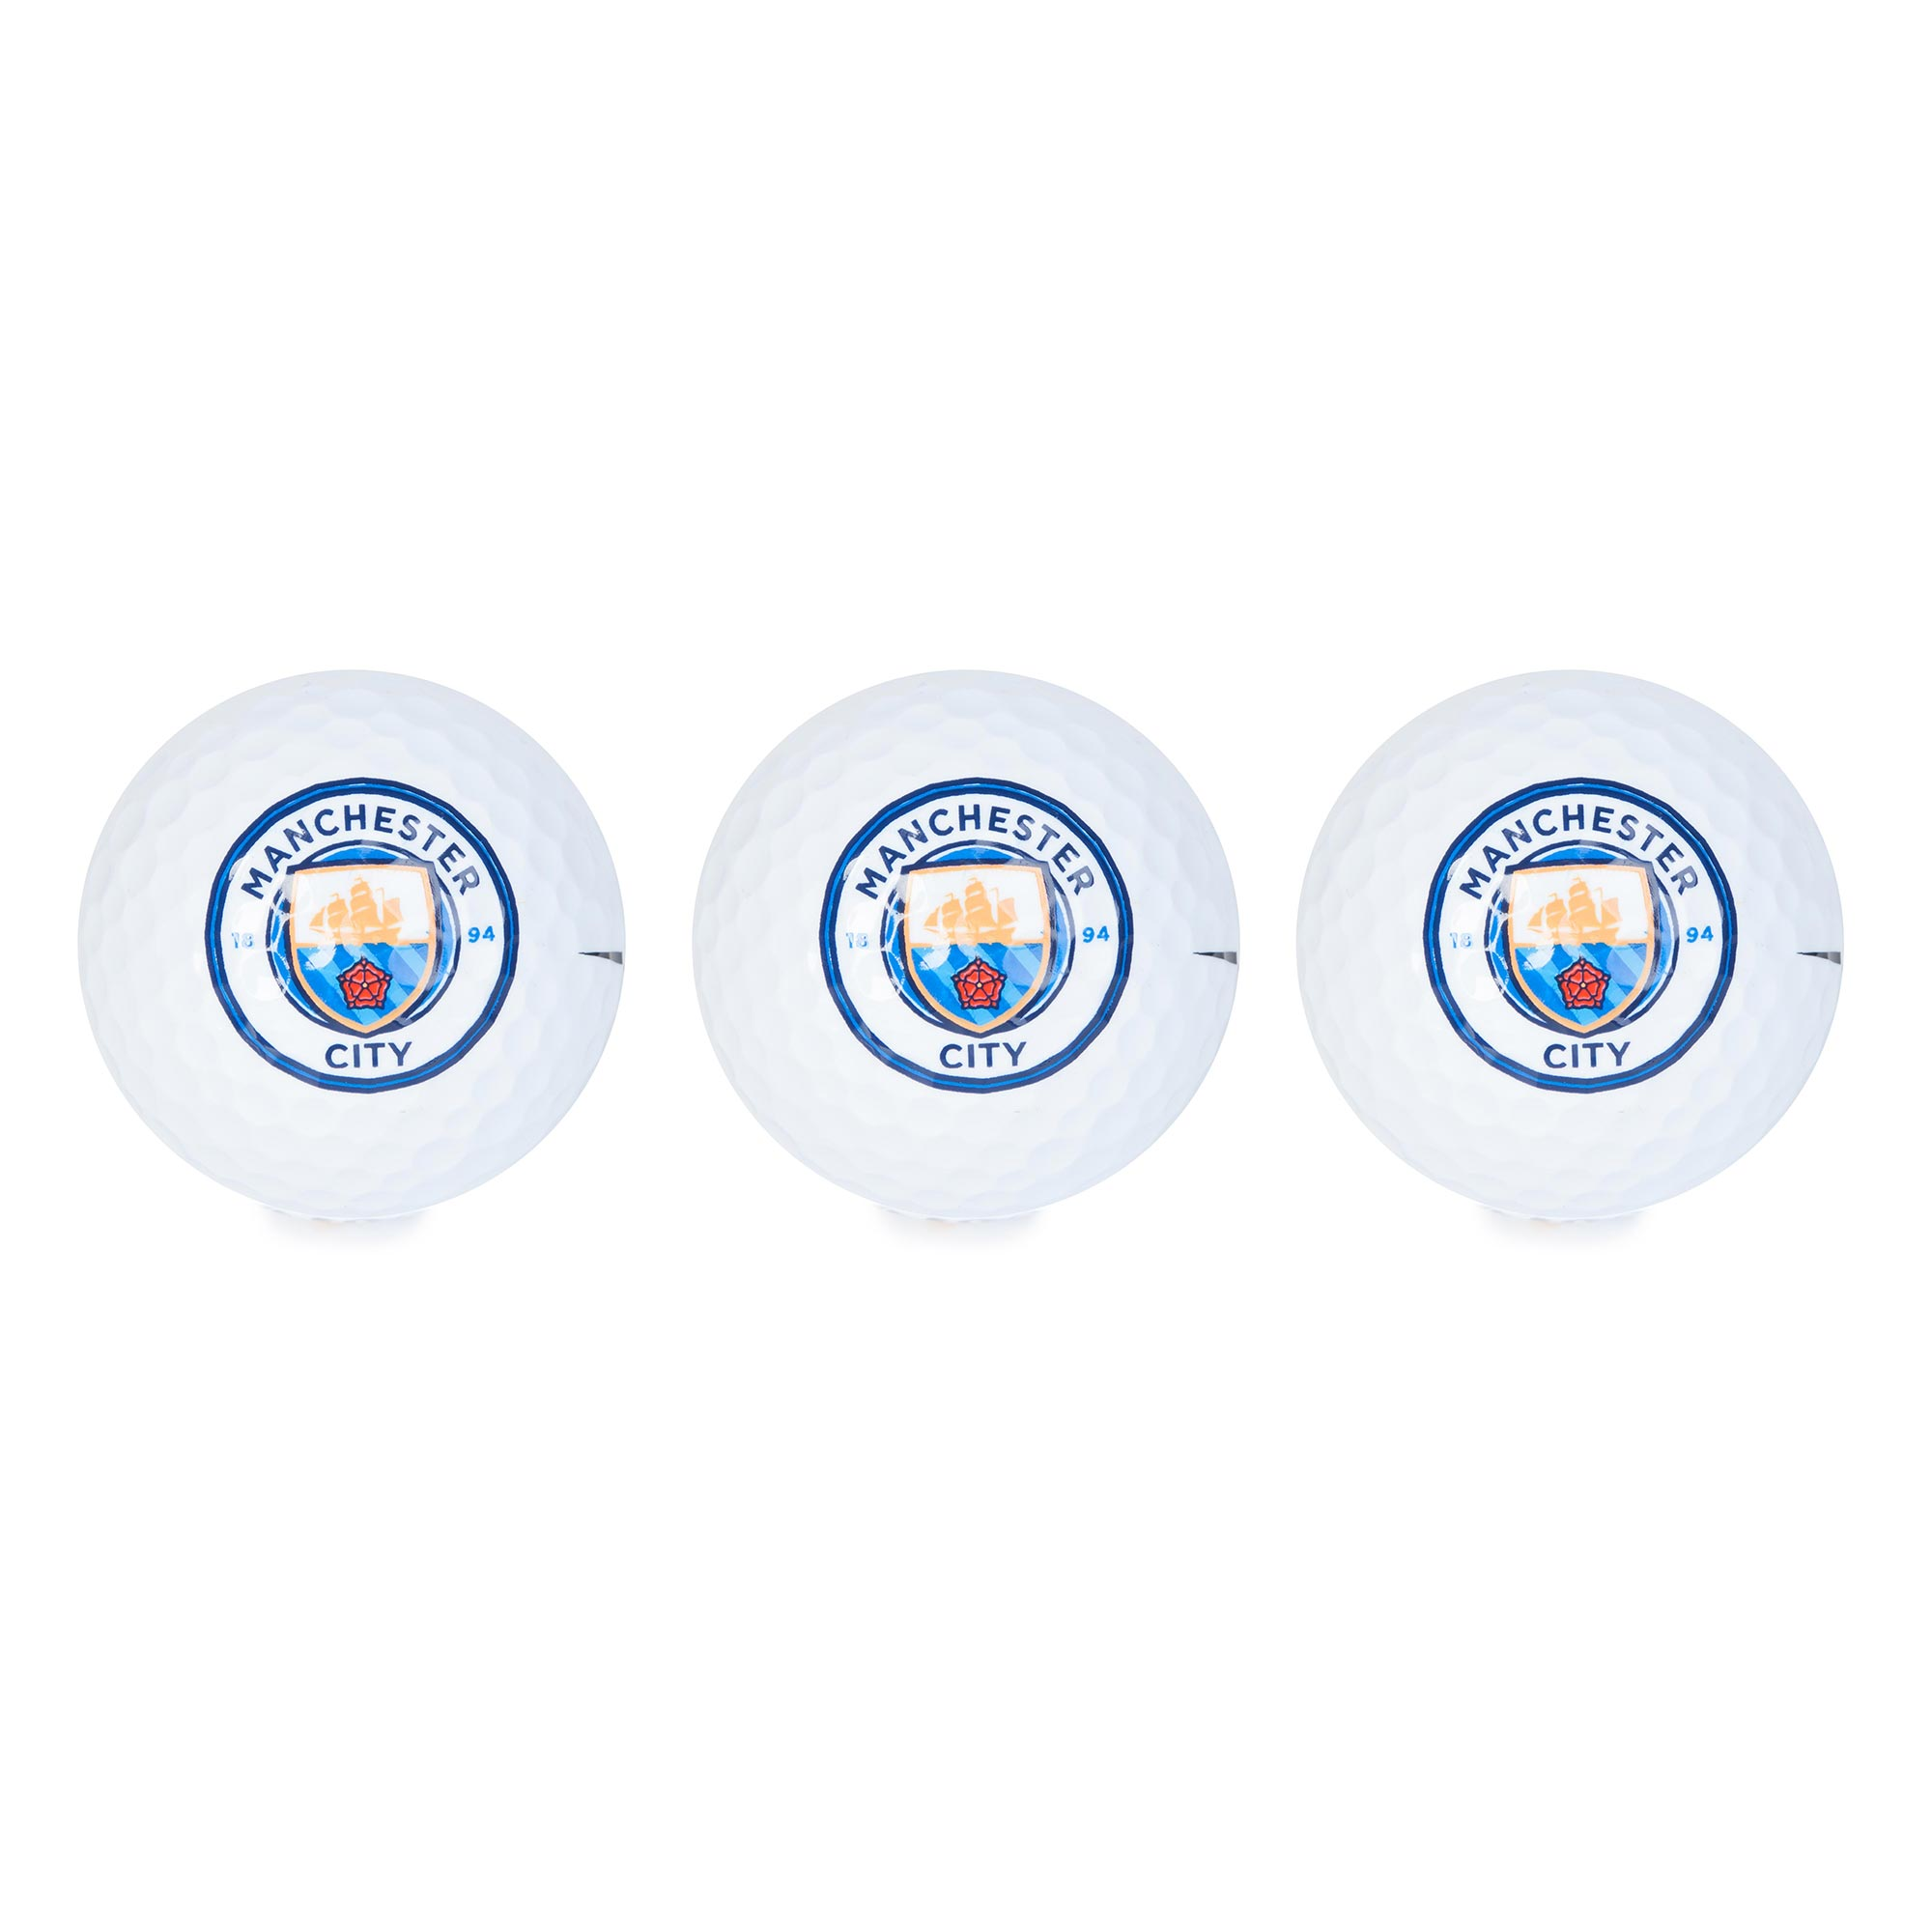 Manchester City Golf Balls - 3 Pack